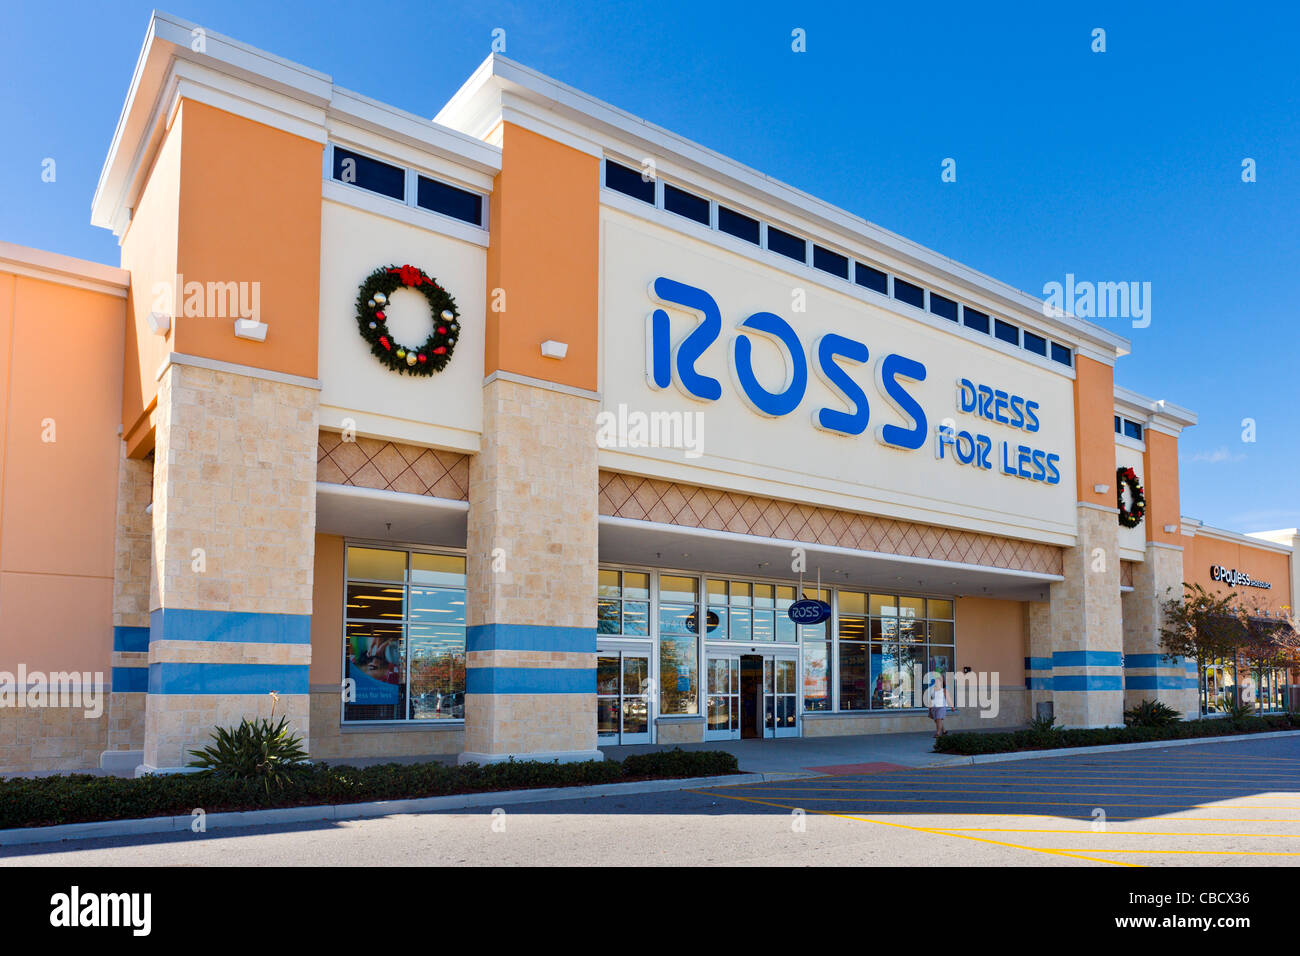 ROSS DRESS FOR LESS USA has a network of shops, which you can find in majority of American towns, maybe even in your own. You can find a complete list of shops, opening hours and maps below on this page. ROSS DRESS FOR LESS online store.